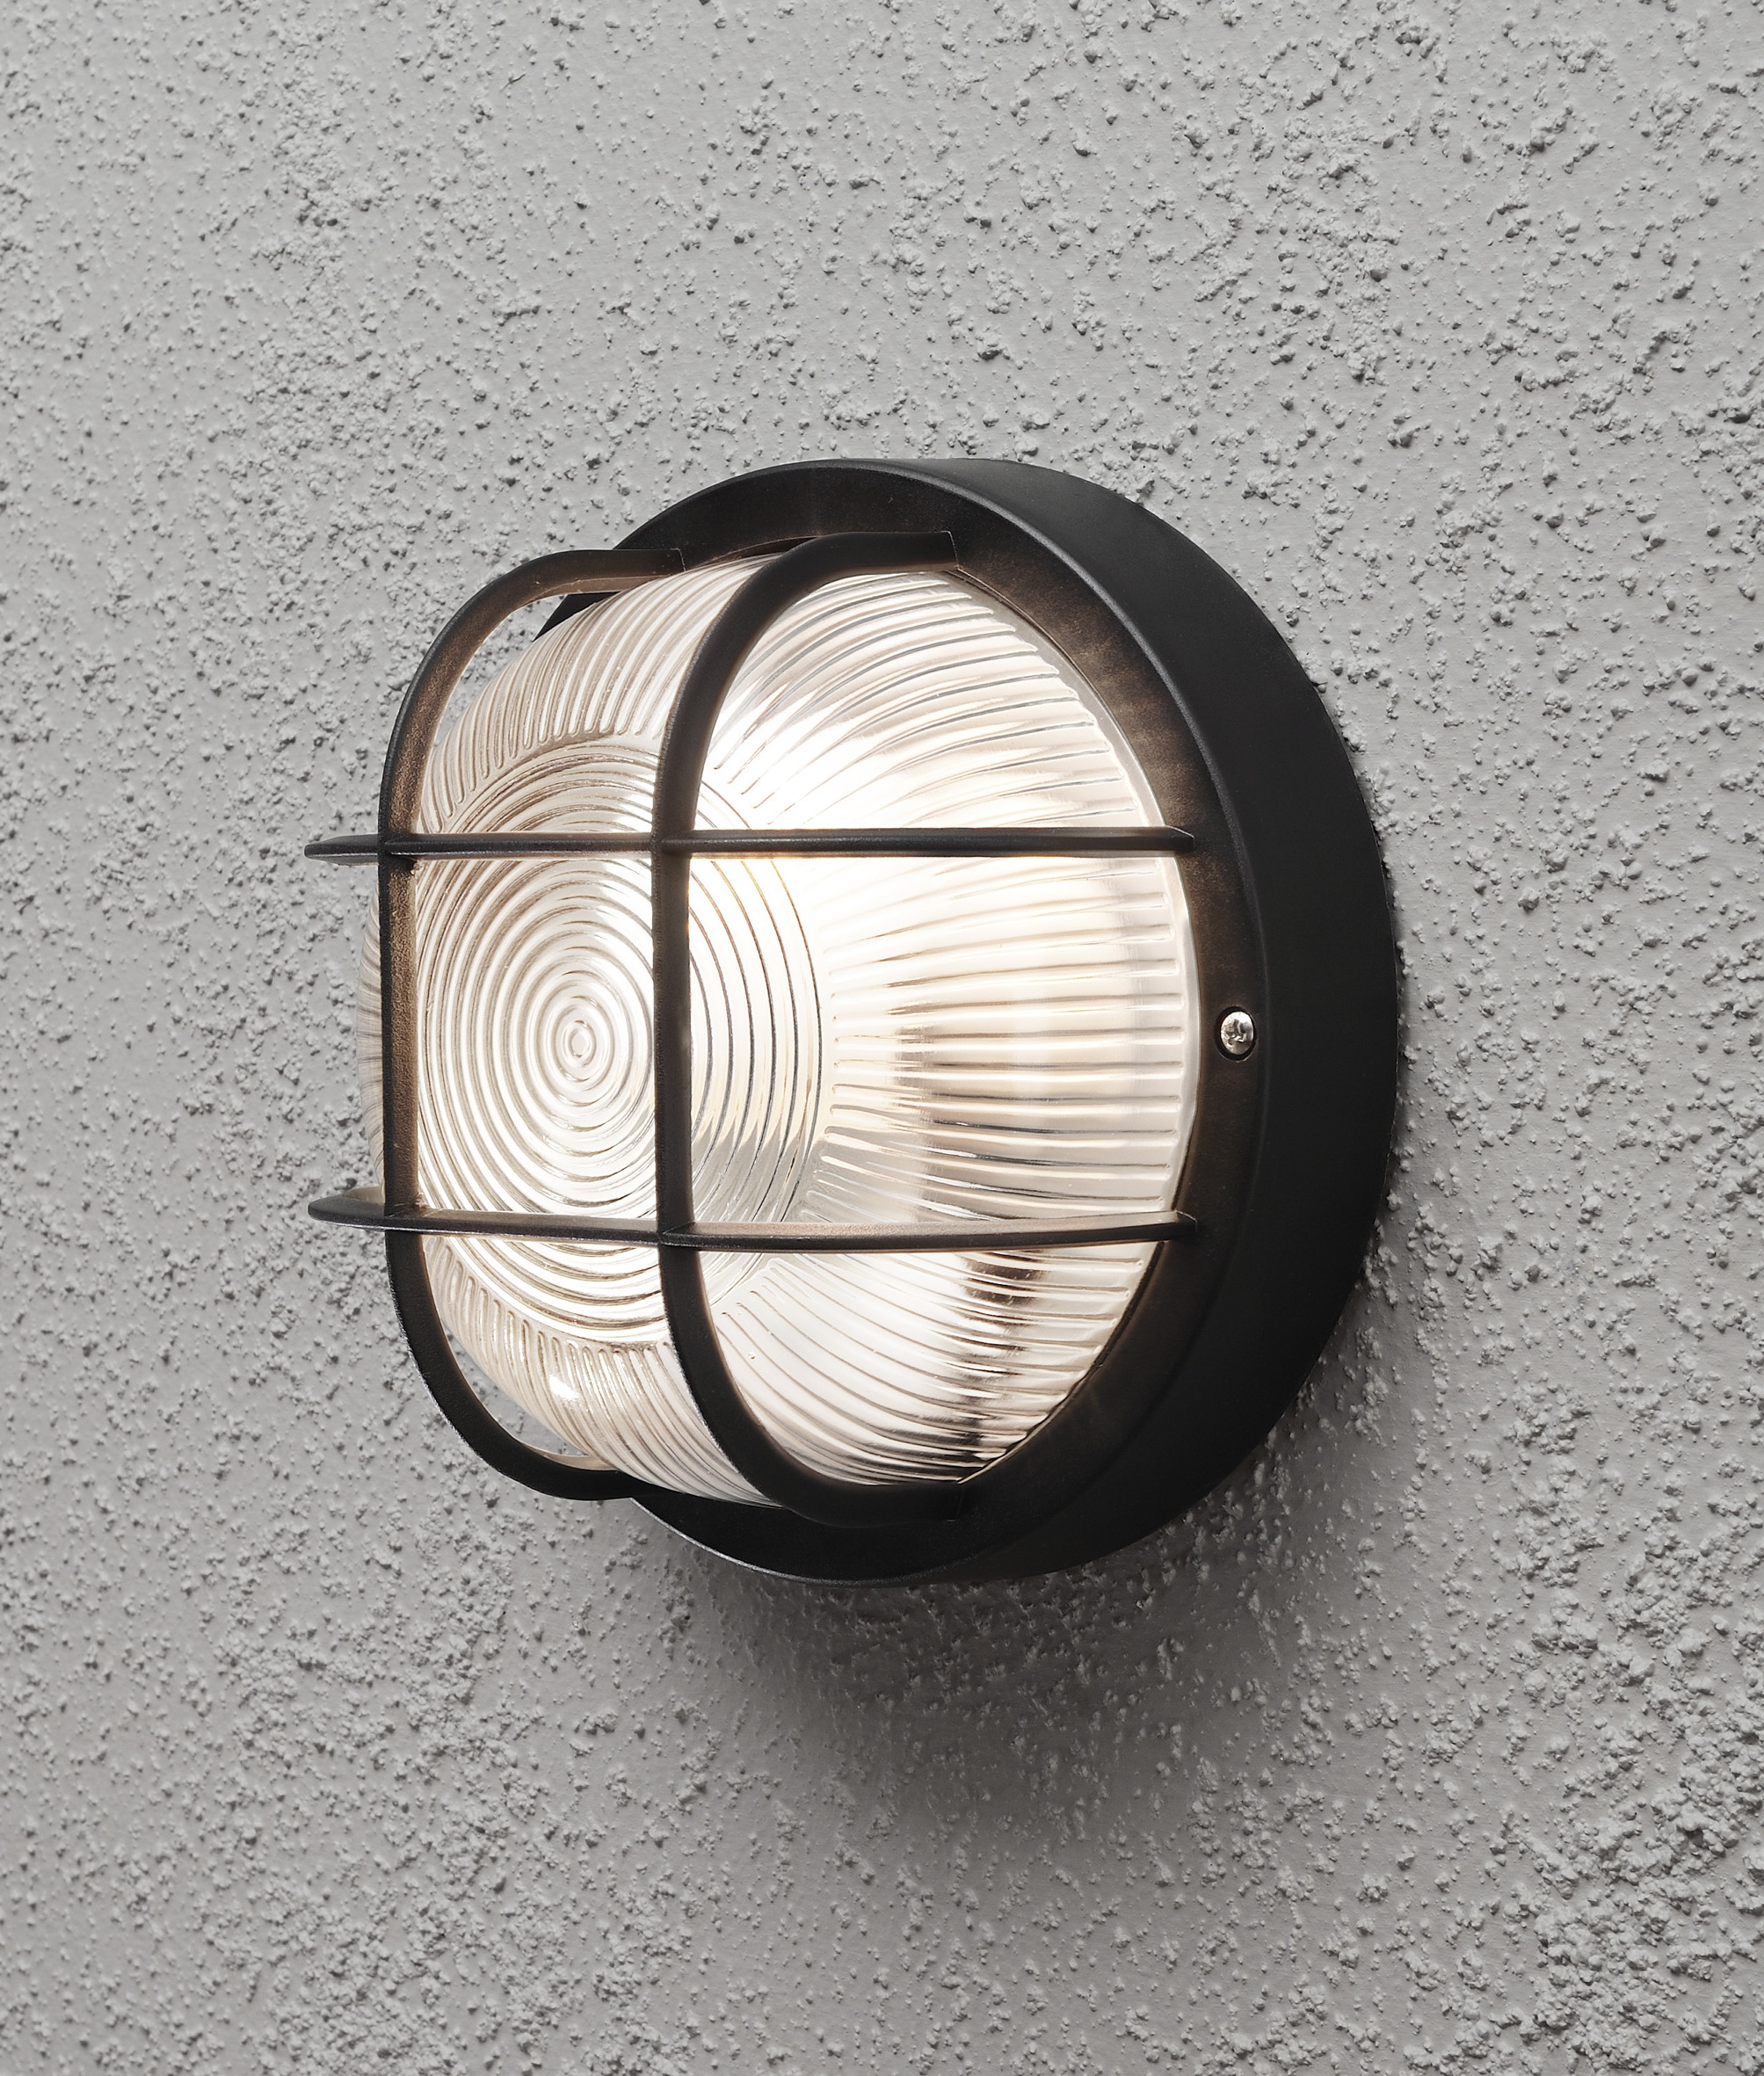 External Light Fittings Caged Bulkhead Exterior Wall Light Ip44 Rated